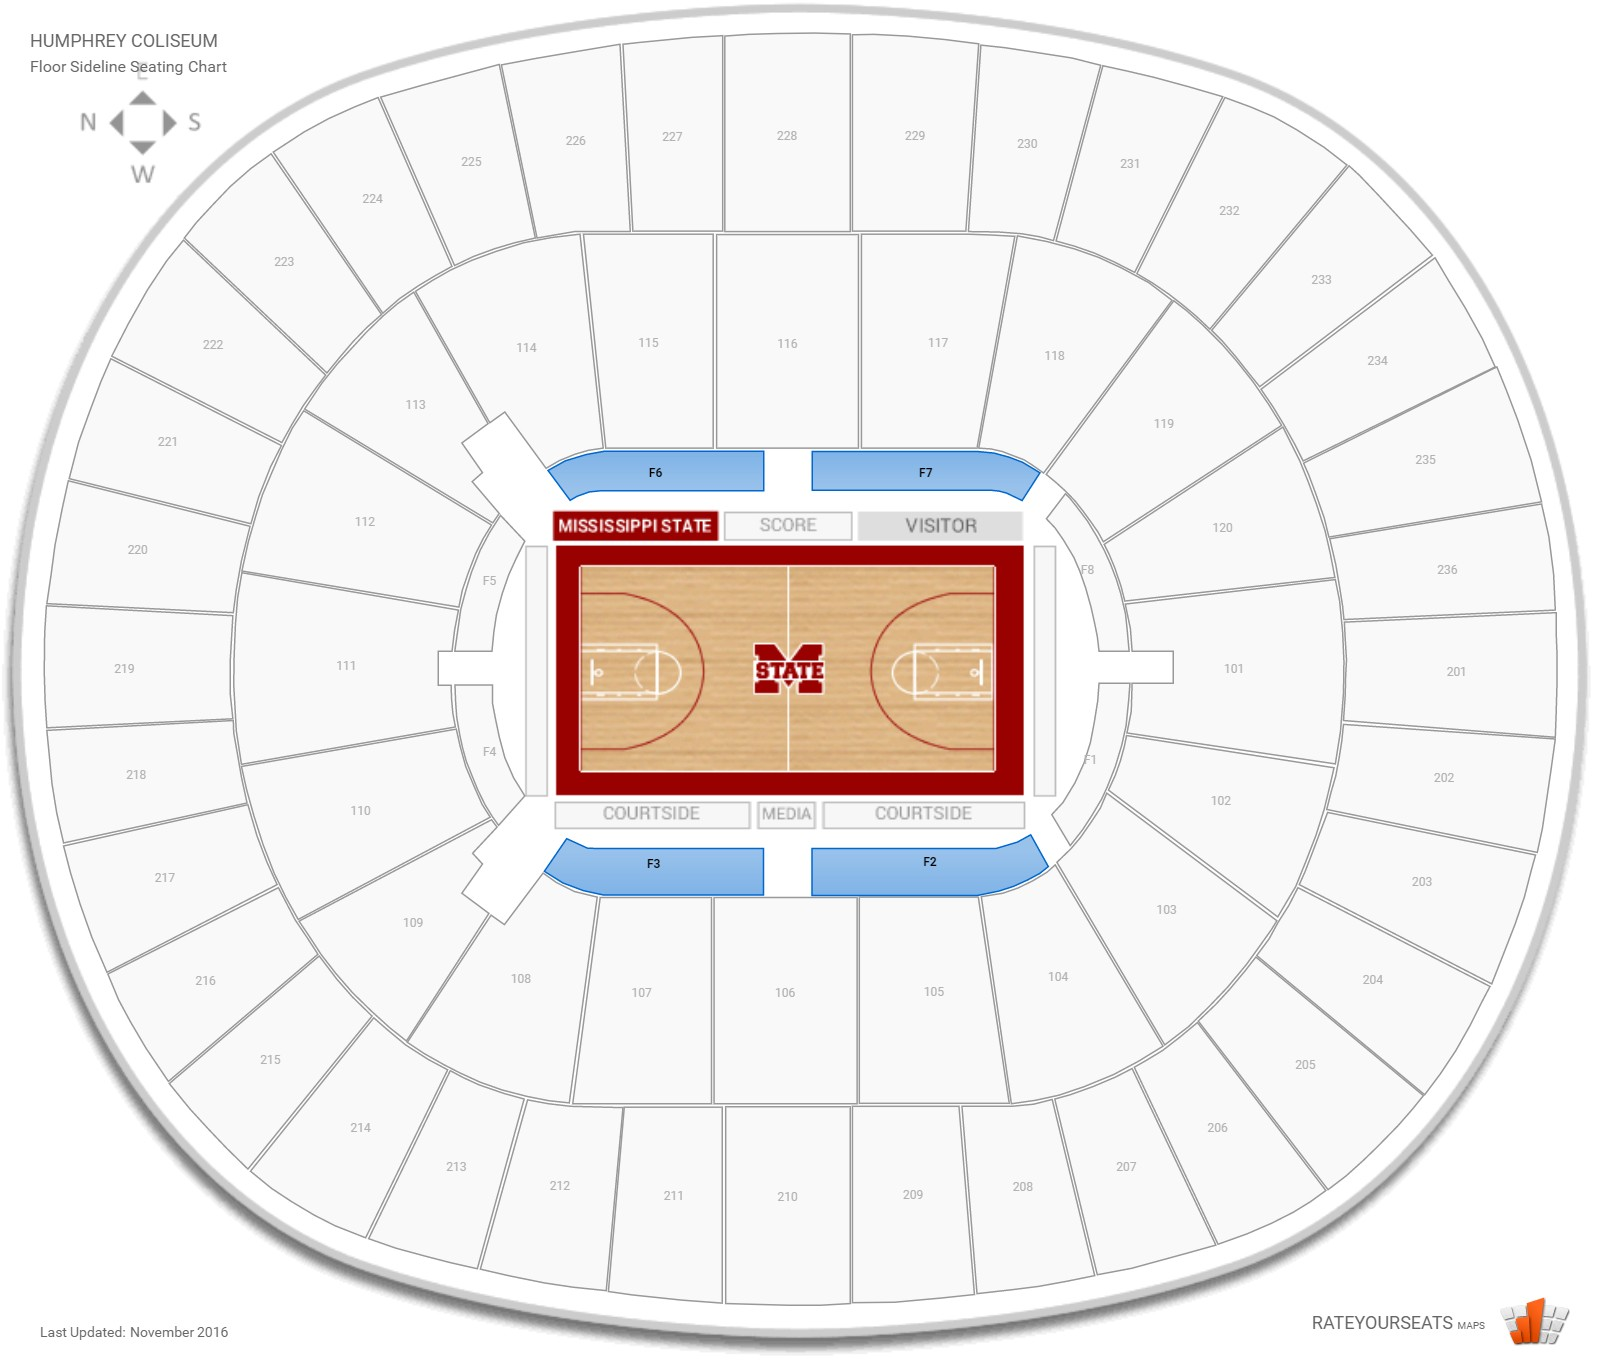 Humphrey coliseum mississippi state seating guide rateyourseats com